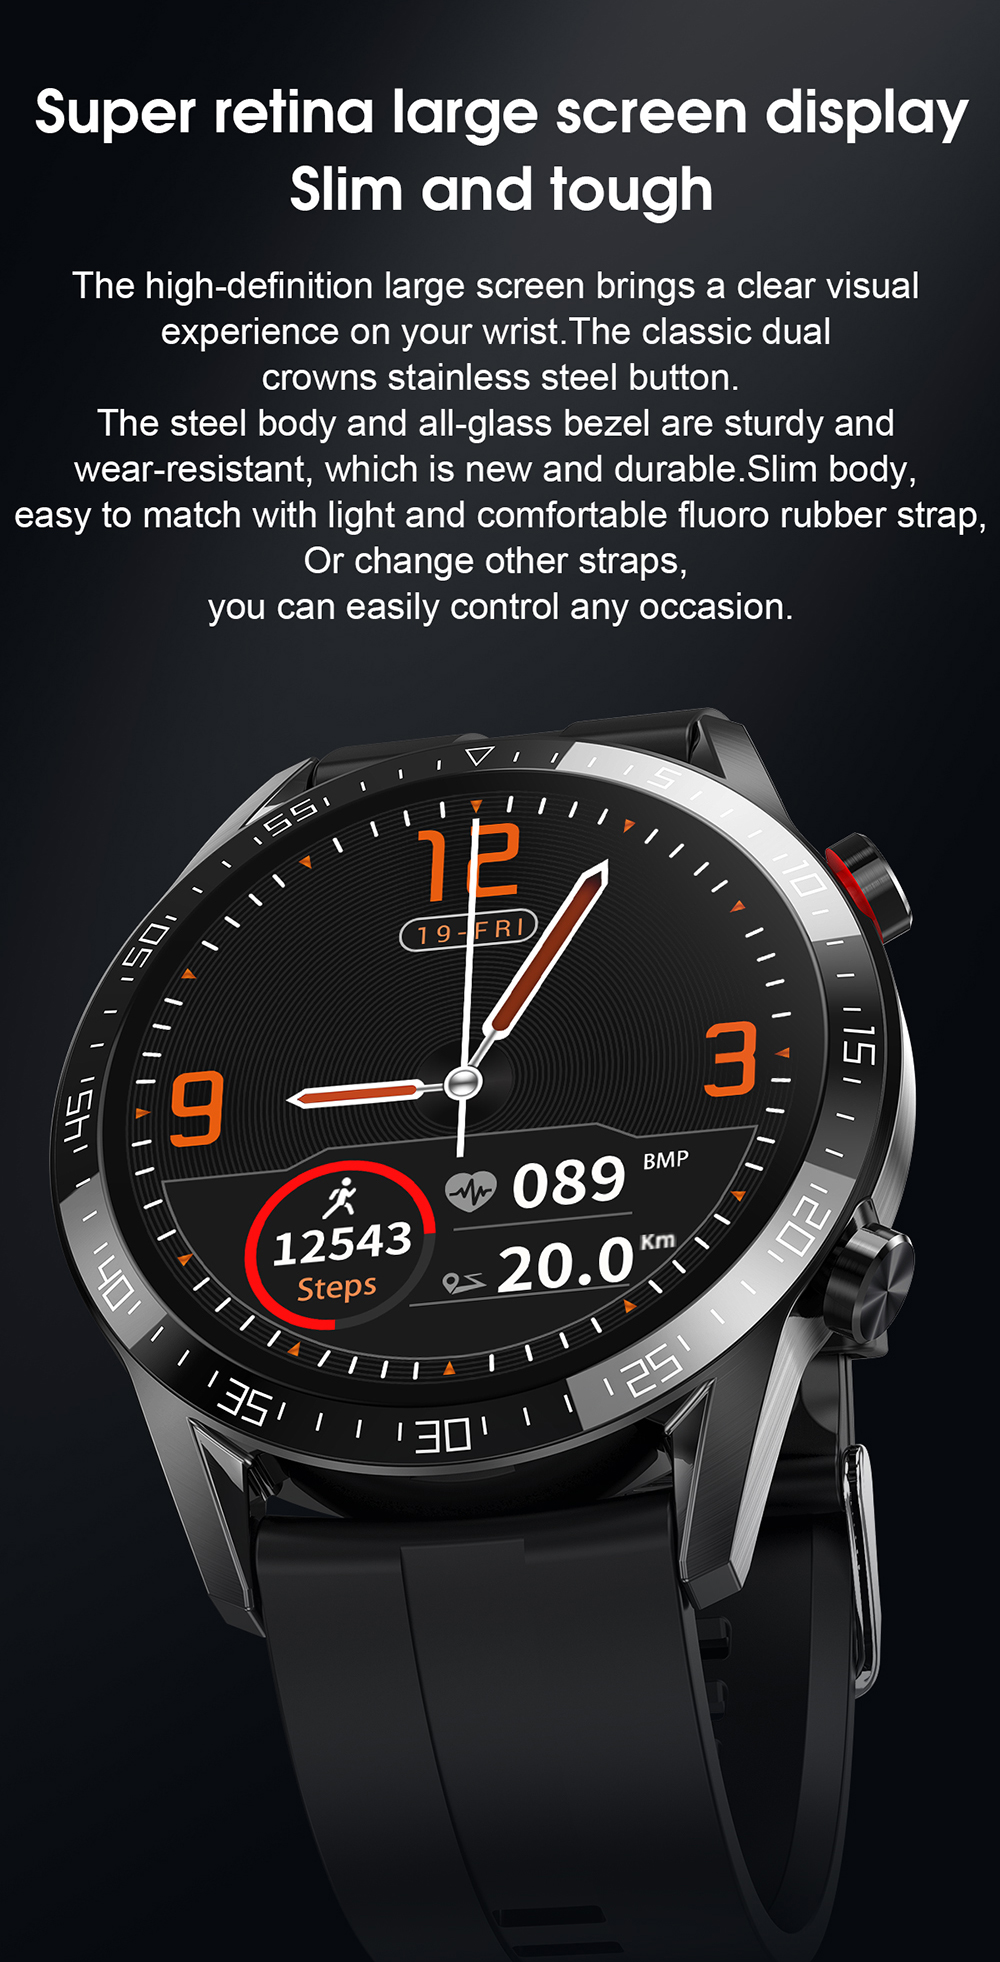 Hdf85e0d3376a48c68c4d7618821b69cdt Reloj Inteligente Hombre Smart Watch Men 2020 Android IP68 Smartwatch Answer Call Smart Watch Man For Huawei Android Apple Phone